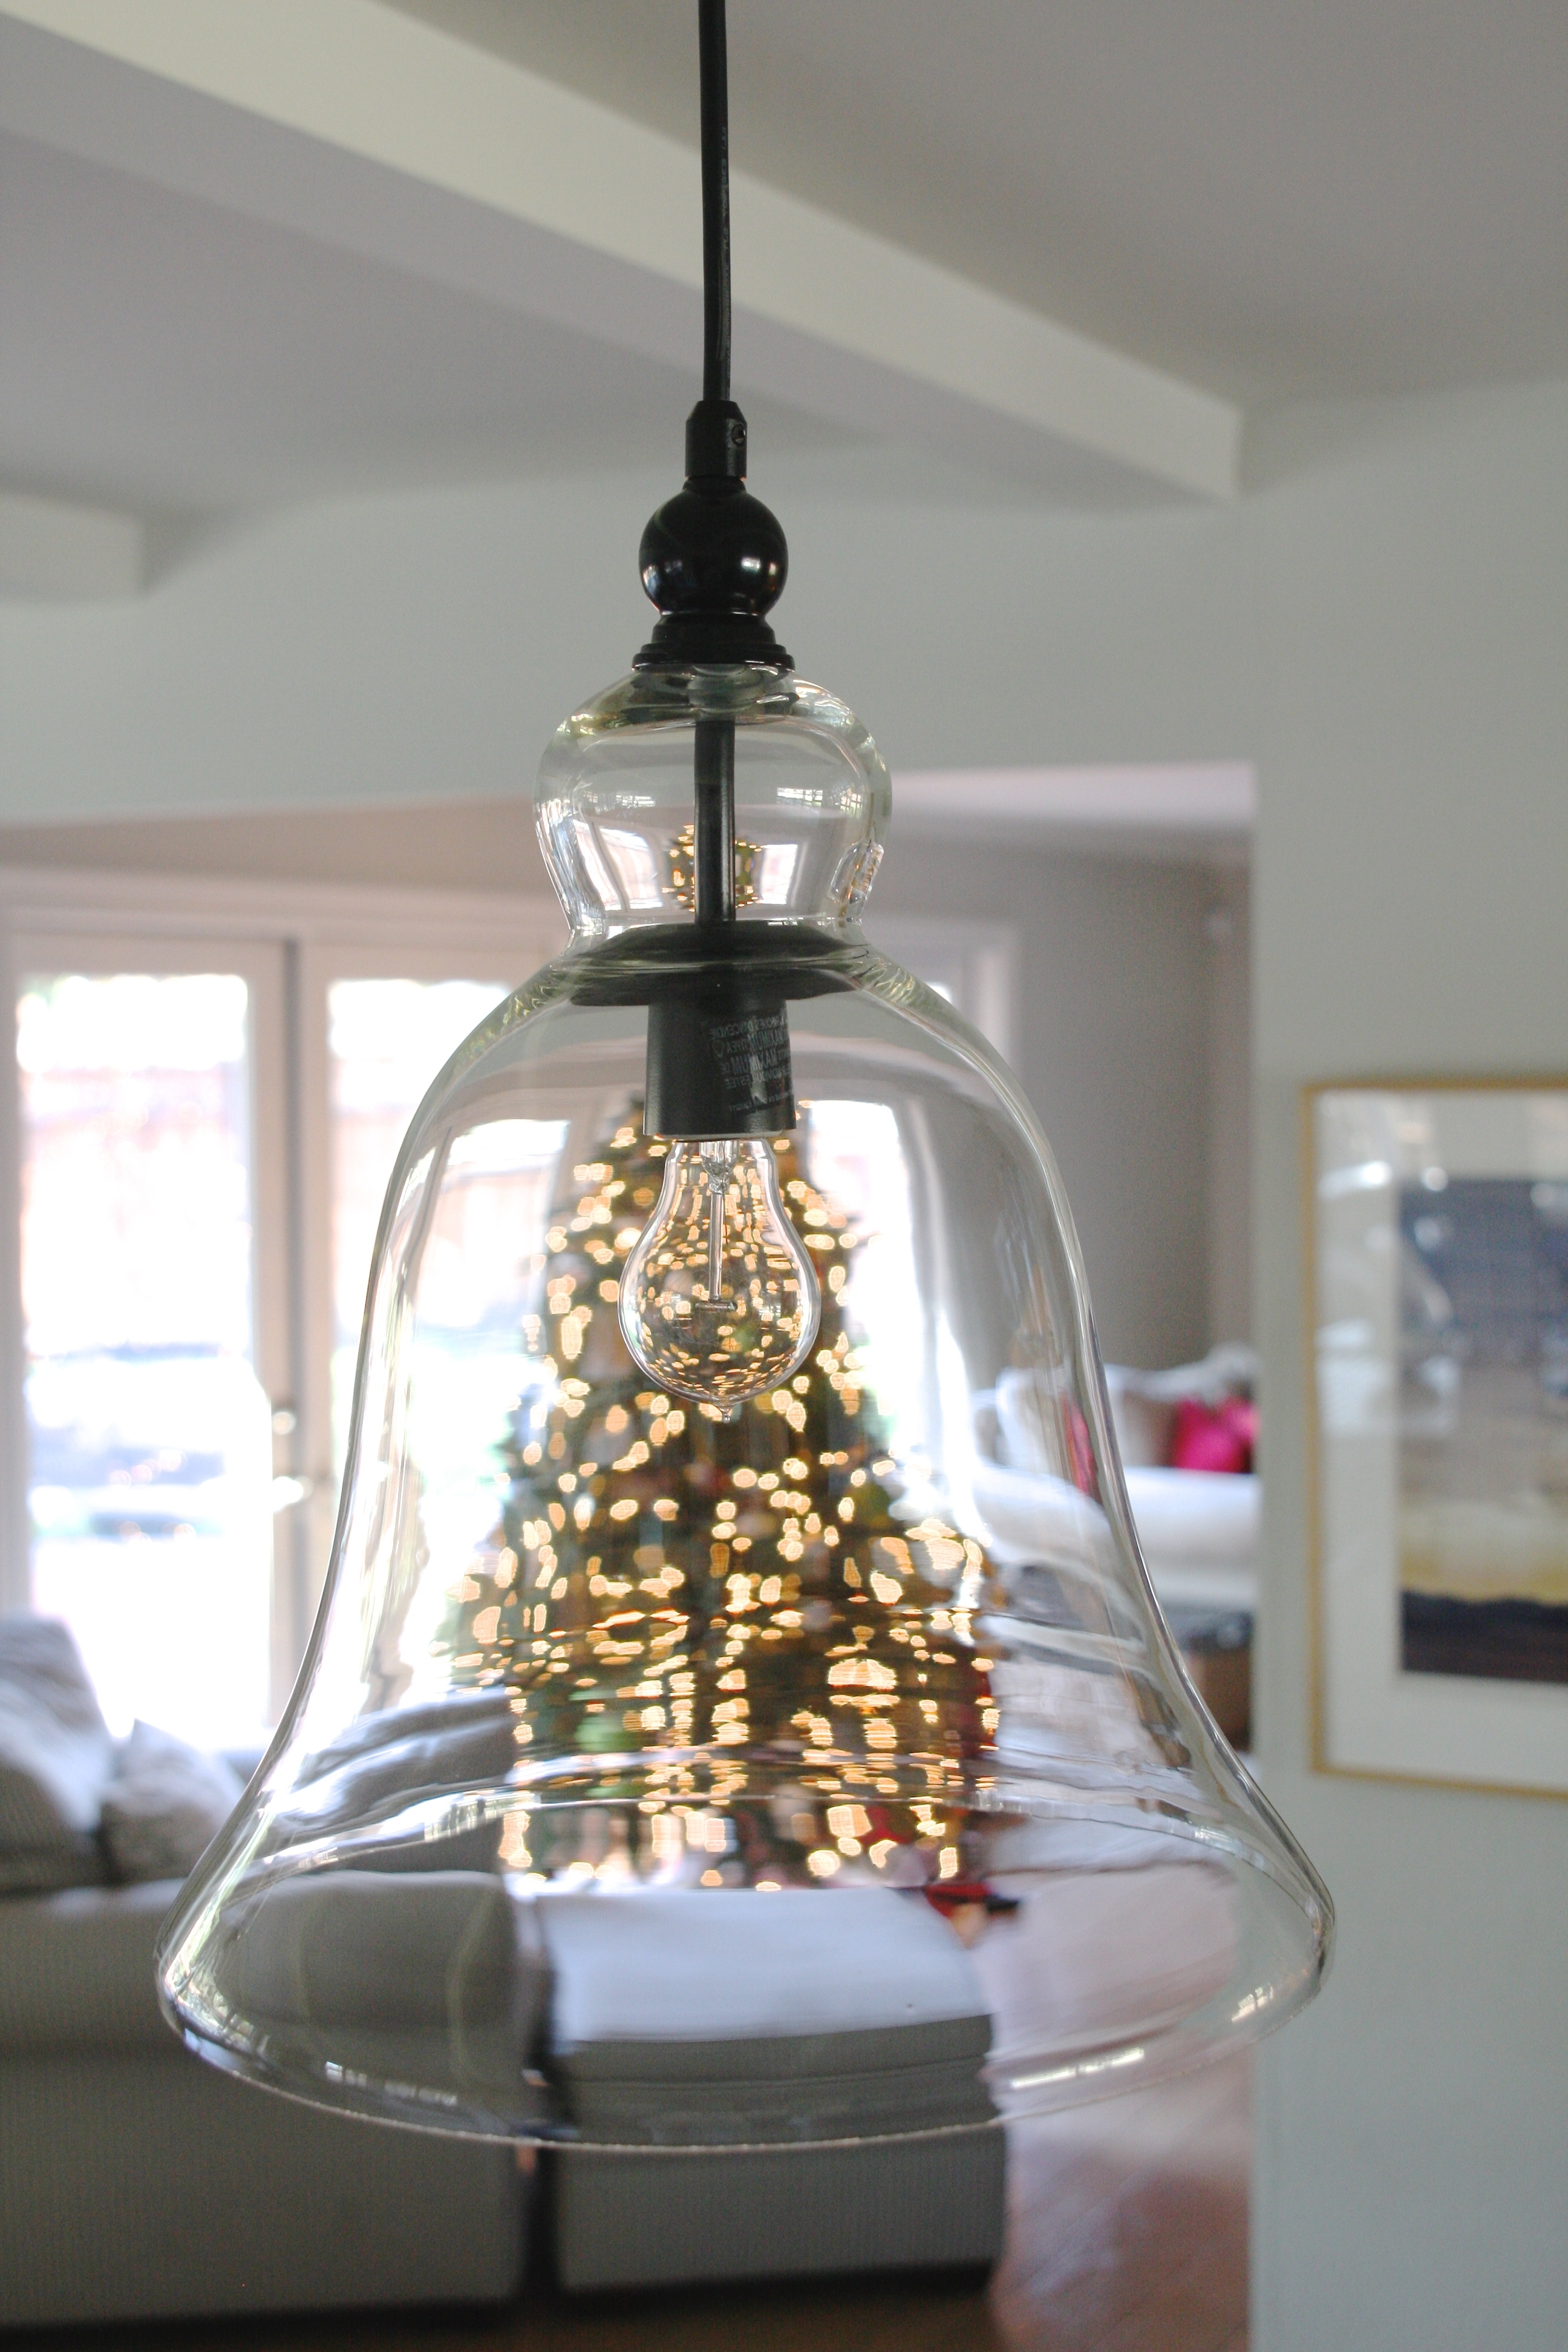 Outdoor Lanterns At Pottery Barn Intended For Most Up To Date How To Clean Pottery Barn Rustic Pendant Lights – Simply Organized (View 6 of 20)